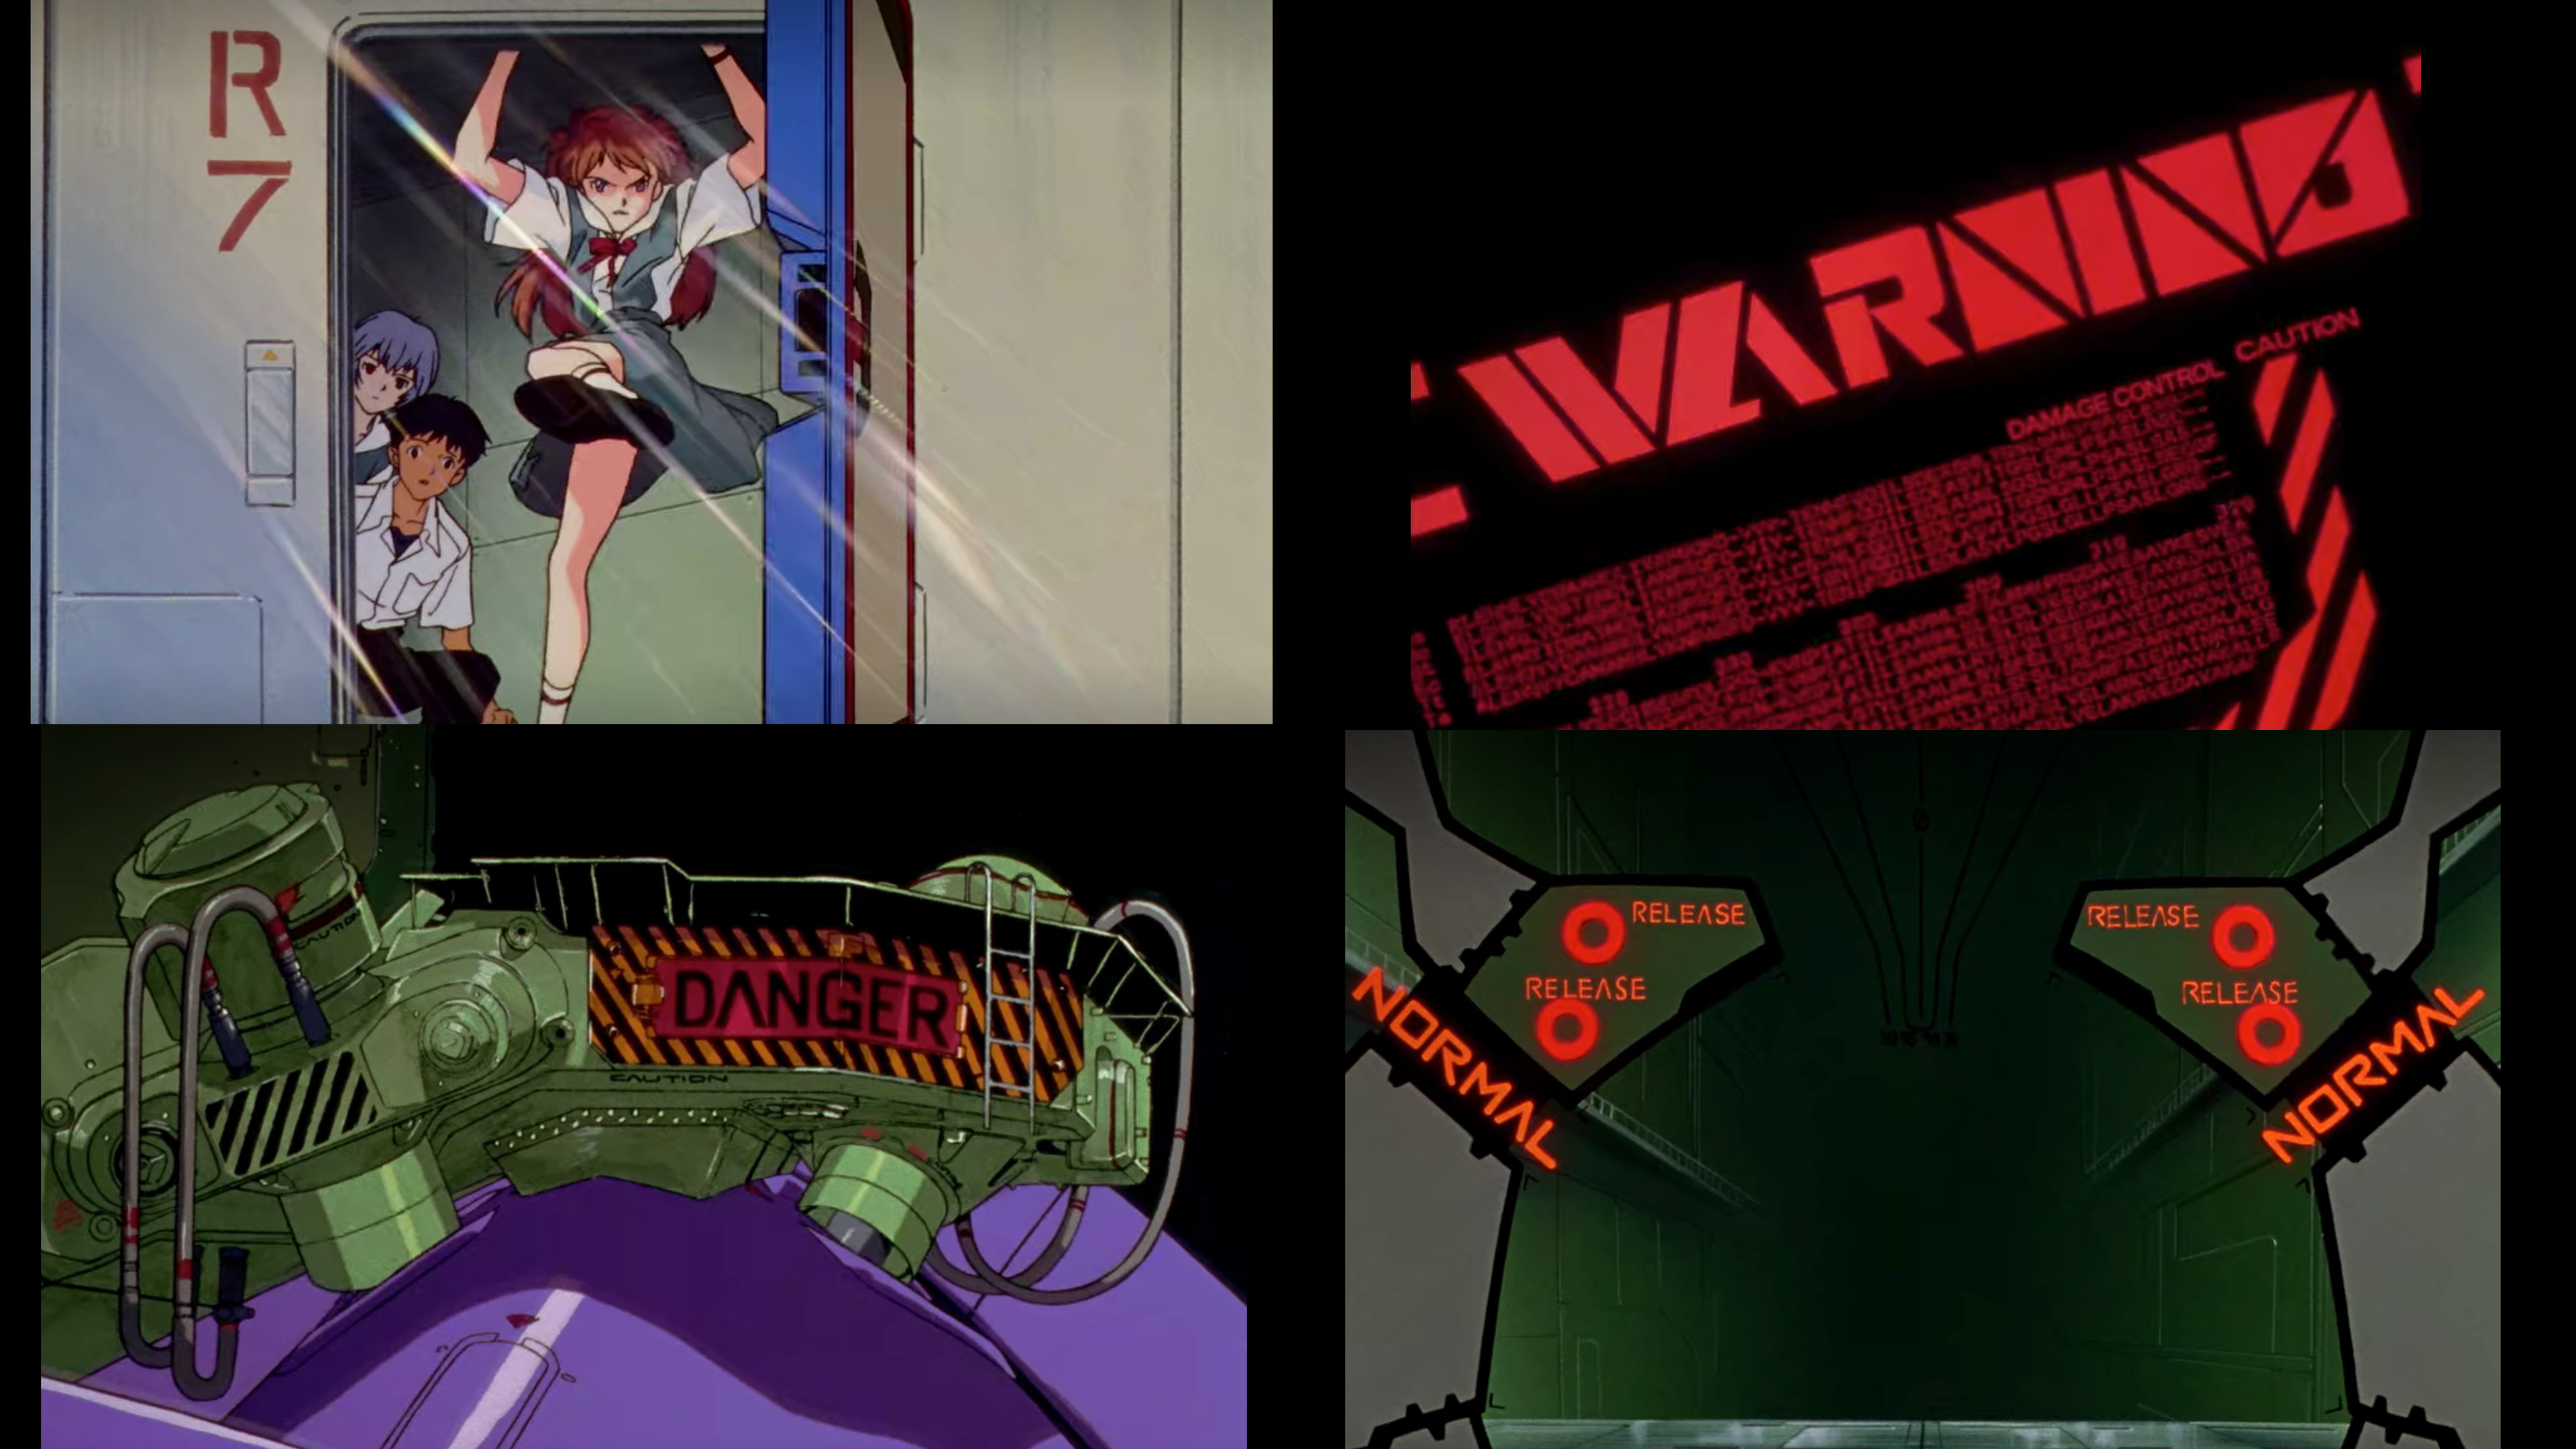 references from the anime